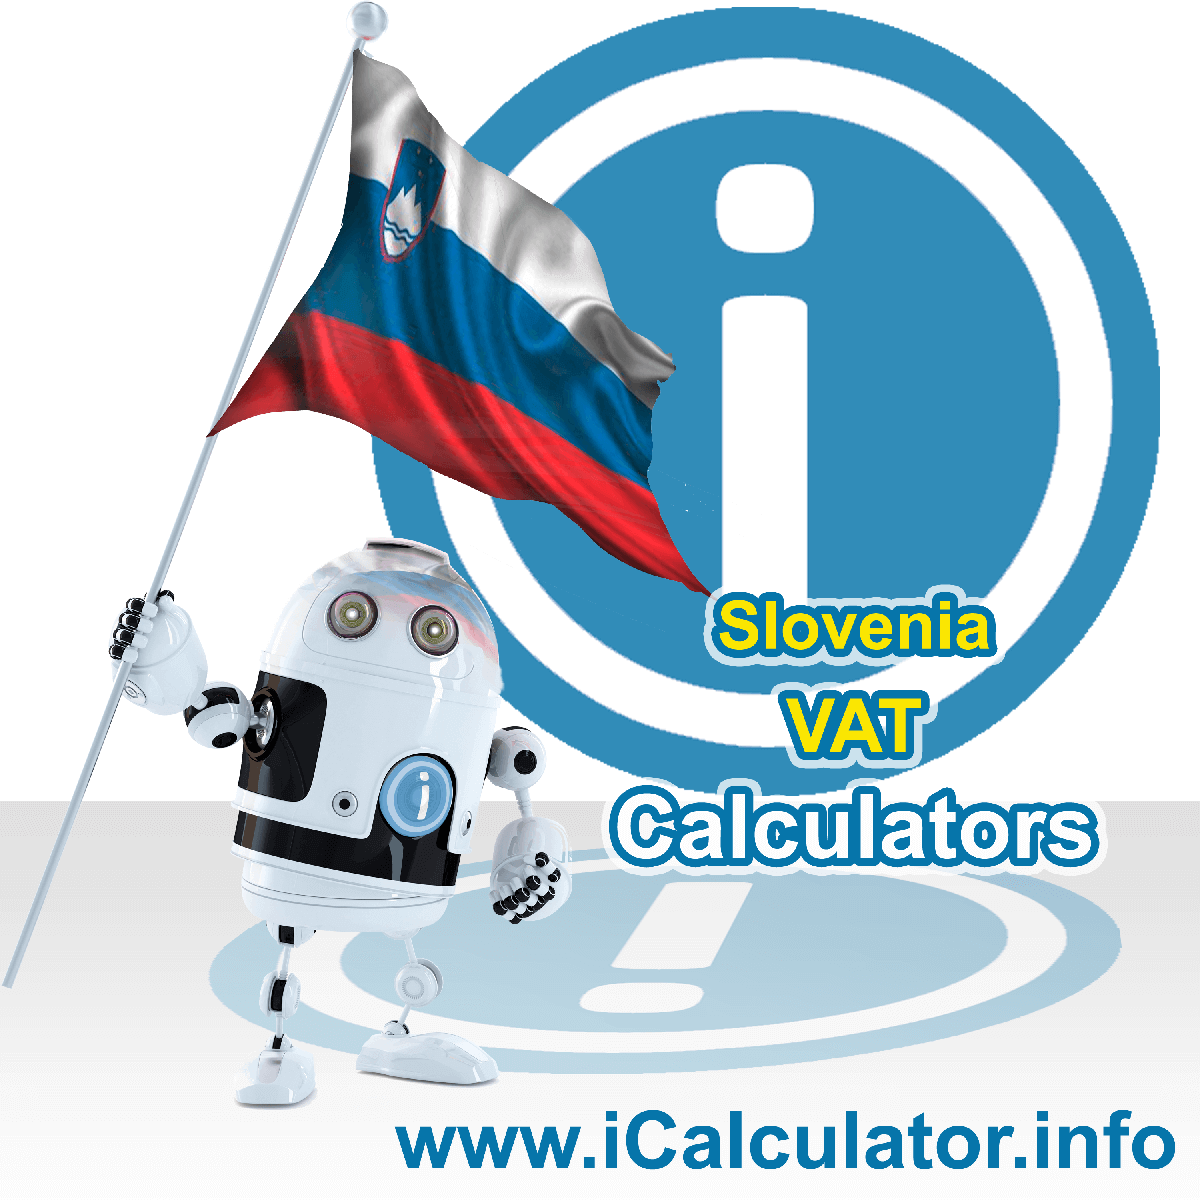 Slovenia VAT Calculator. This image shows the Slovenia flag and information relating to the VAT formula used for calculating Value Added Tax in Slovenia using the Slovenia VAT Calculator in 2020